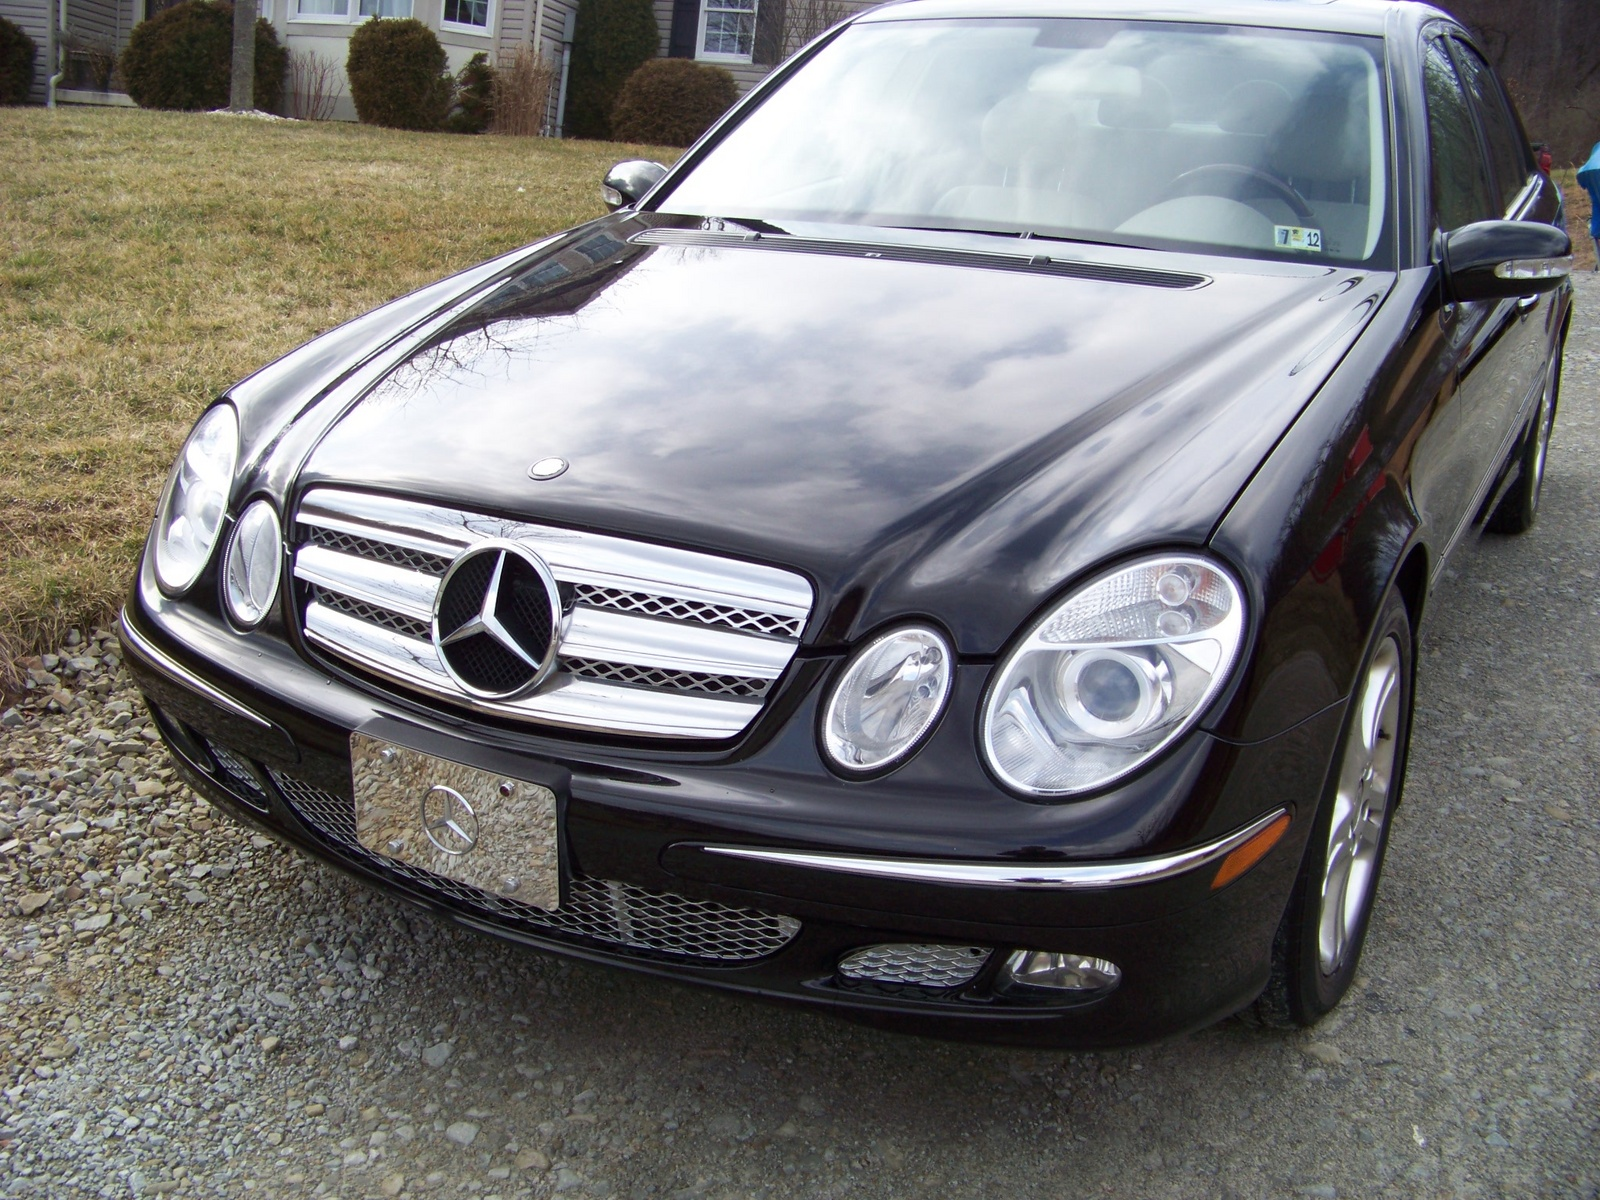 2005 mercedes benz e class pictures cargurus for Mercedes benz coupe 2005